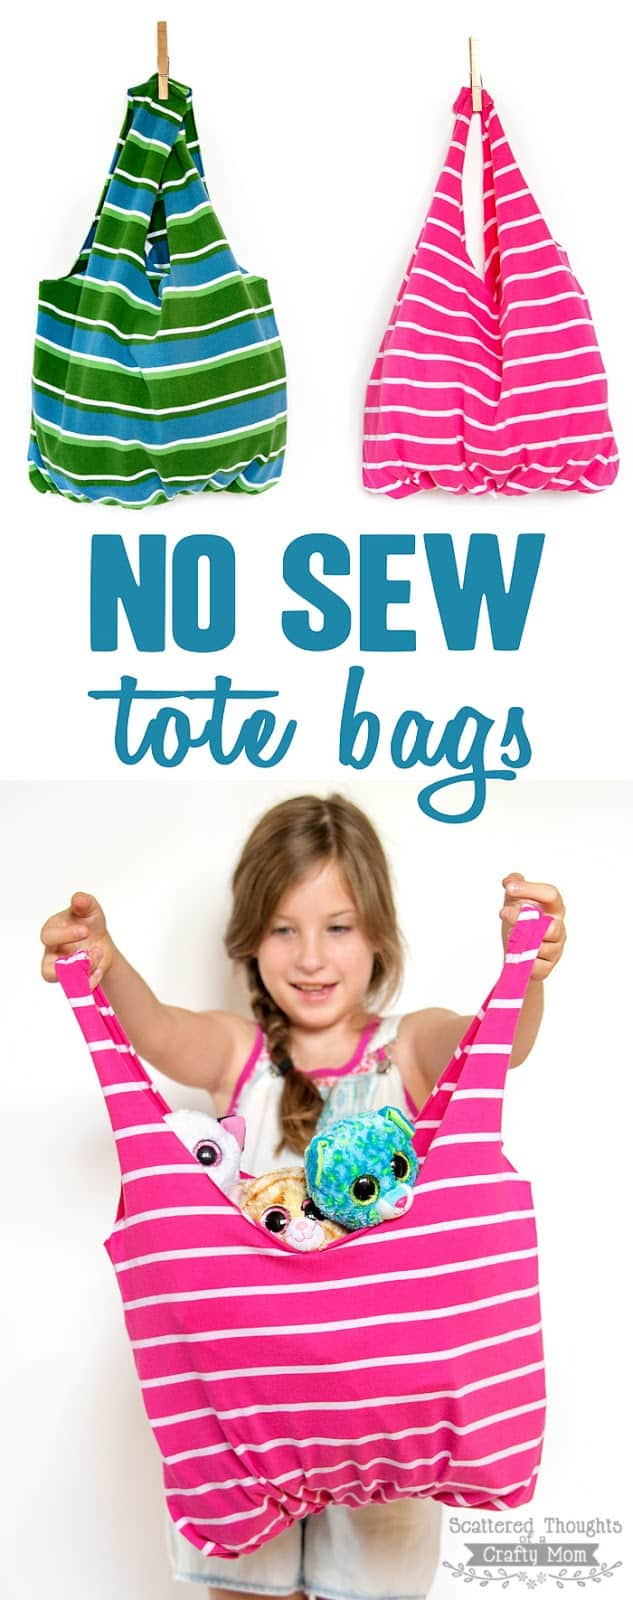 Learn how to make these No Sew Tote Bags. All you need is an old T-shirt and a pair of scissors! (Upcycling / recycling at its best!)